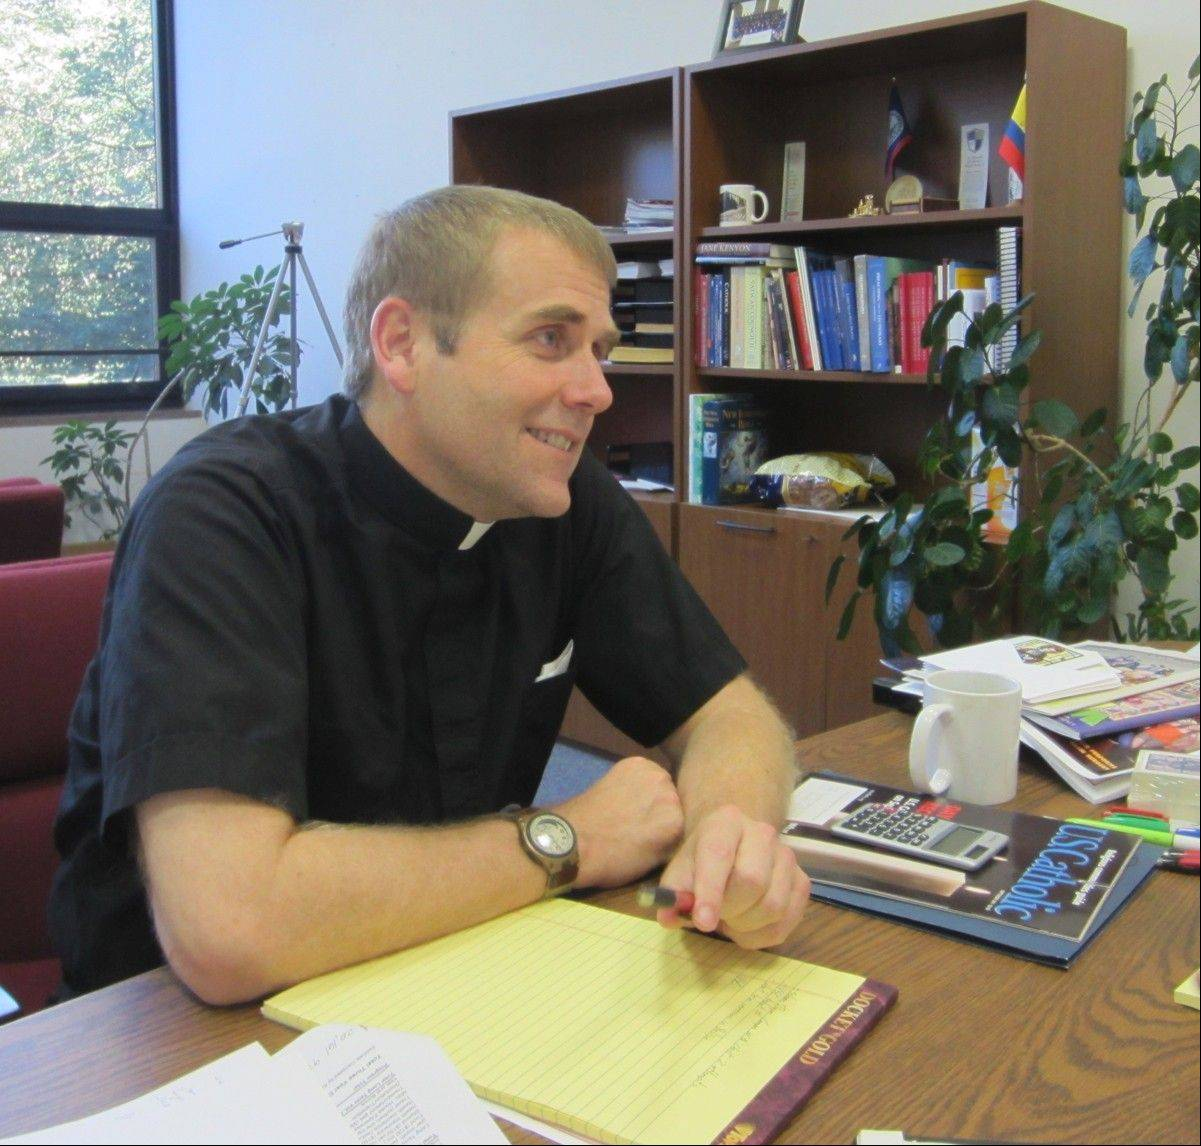 Fr. Corey Brost at his desk.